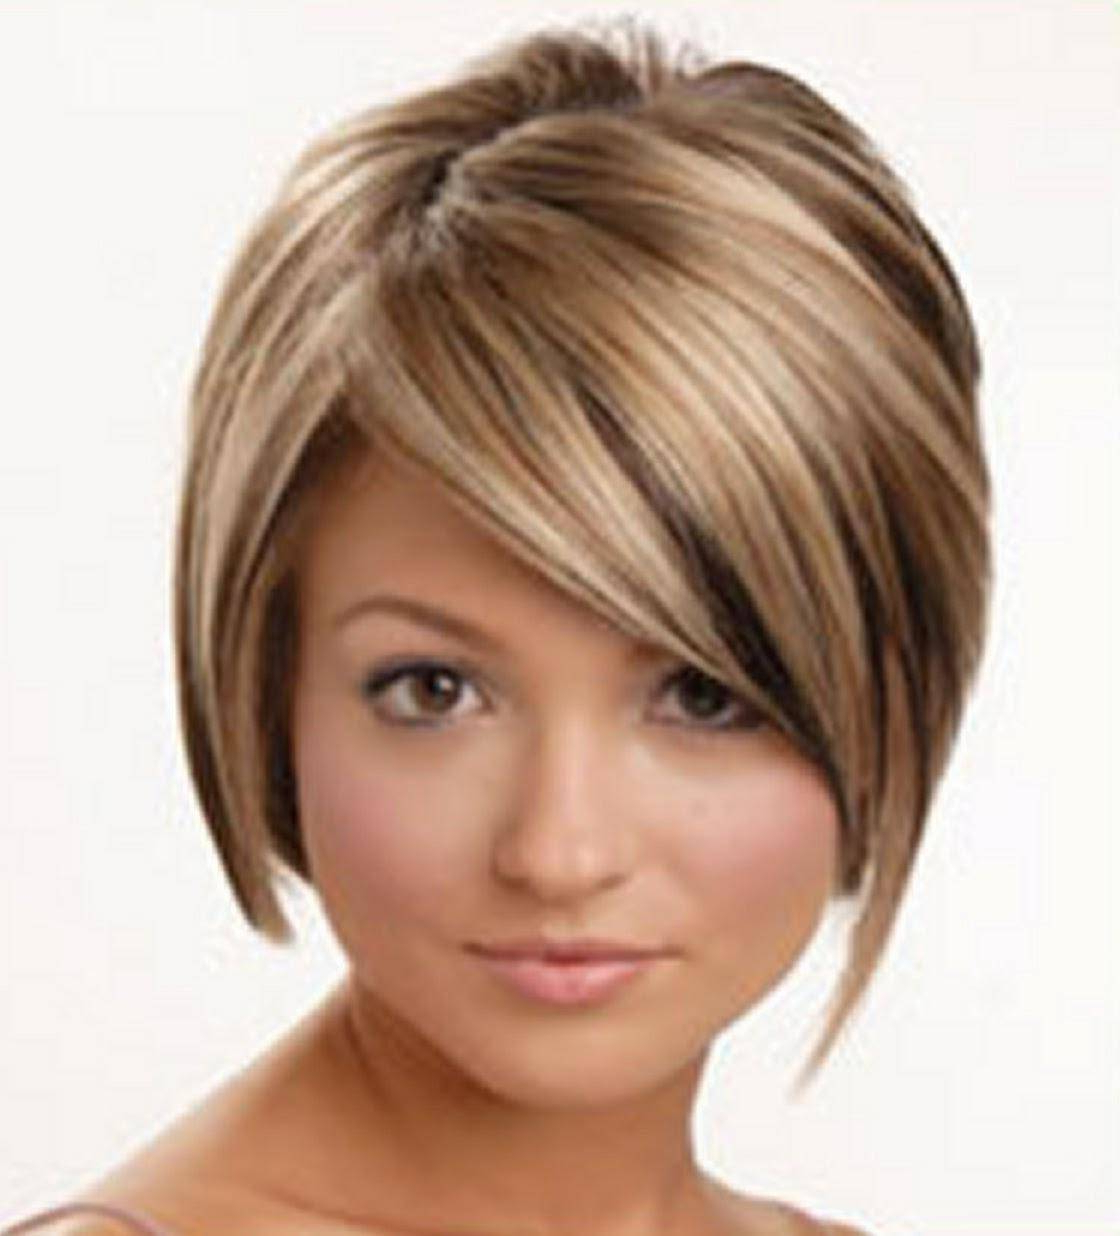 Short Hairstyles For Women With Straight Hair – Short And Cuts Within Short Hairstyles For Straight Thick Hair (View 17 of 25)